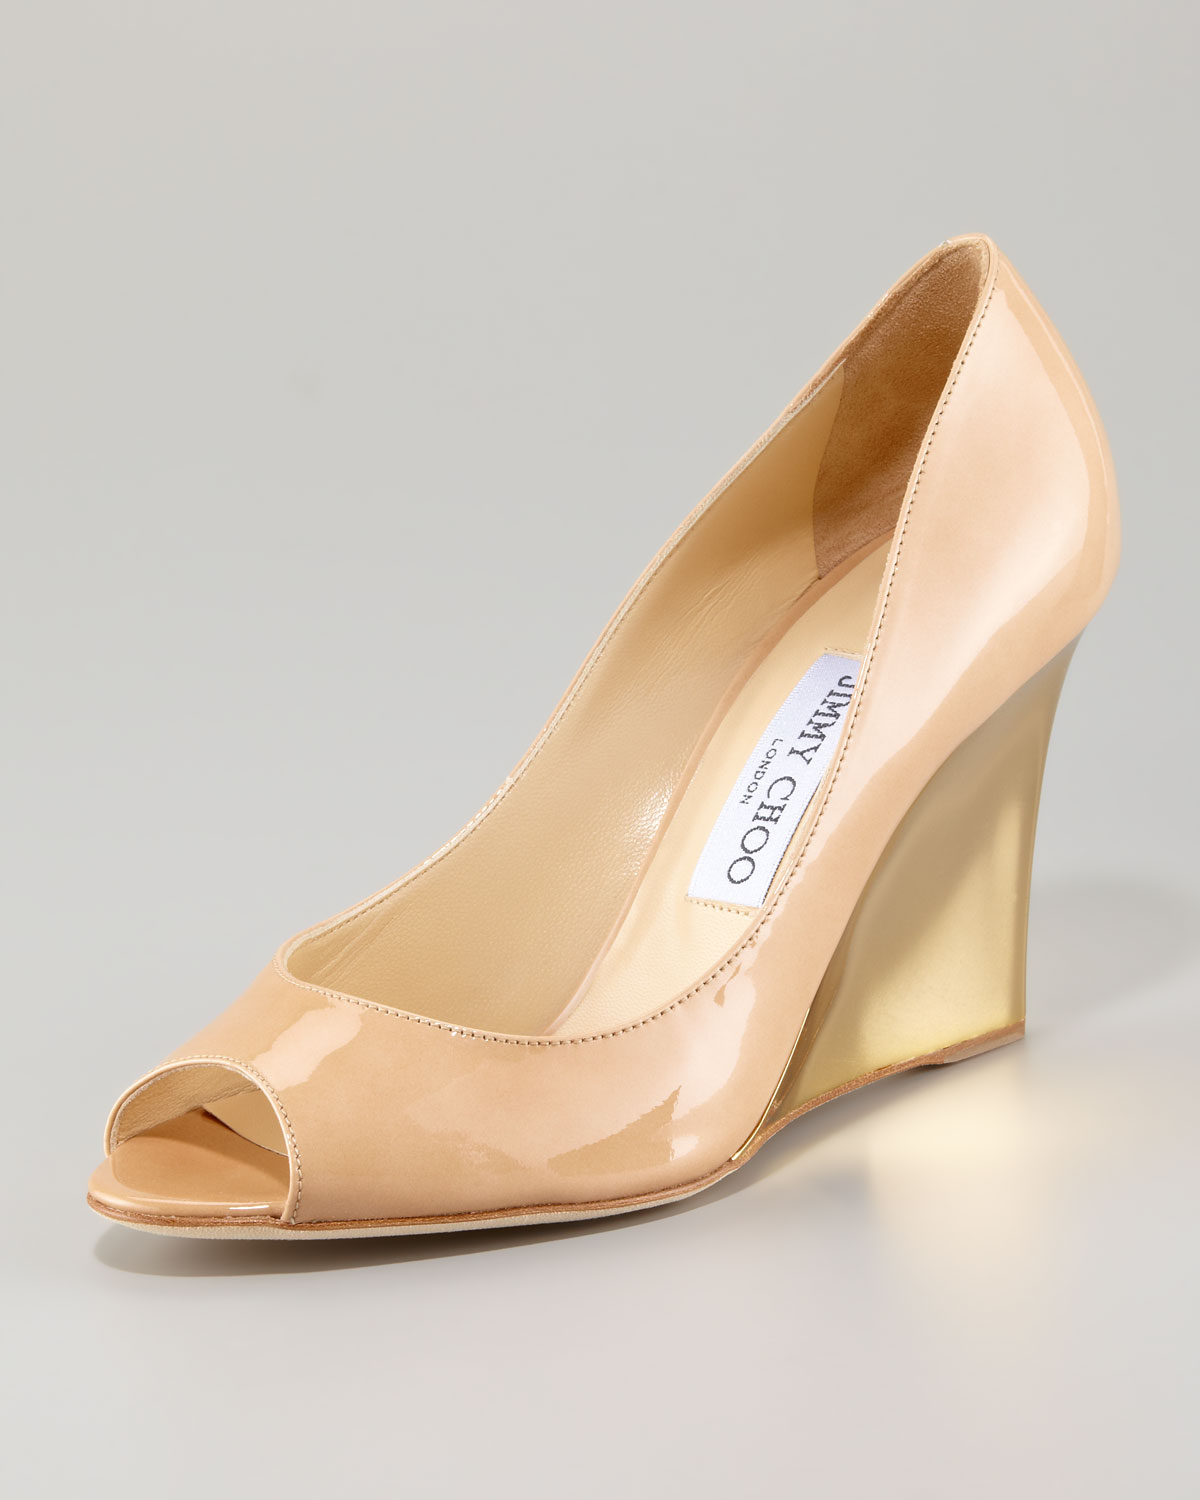 c01e50b3eb7 Lyst - Jimmy Choo Baxen Peeptoe Wedge Pump in Natural